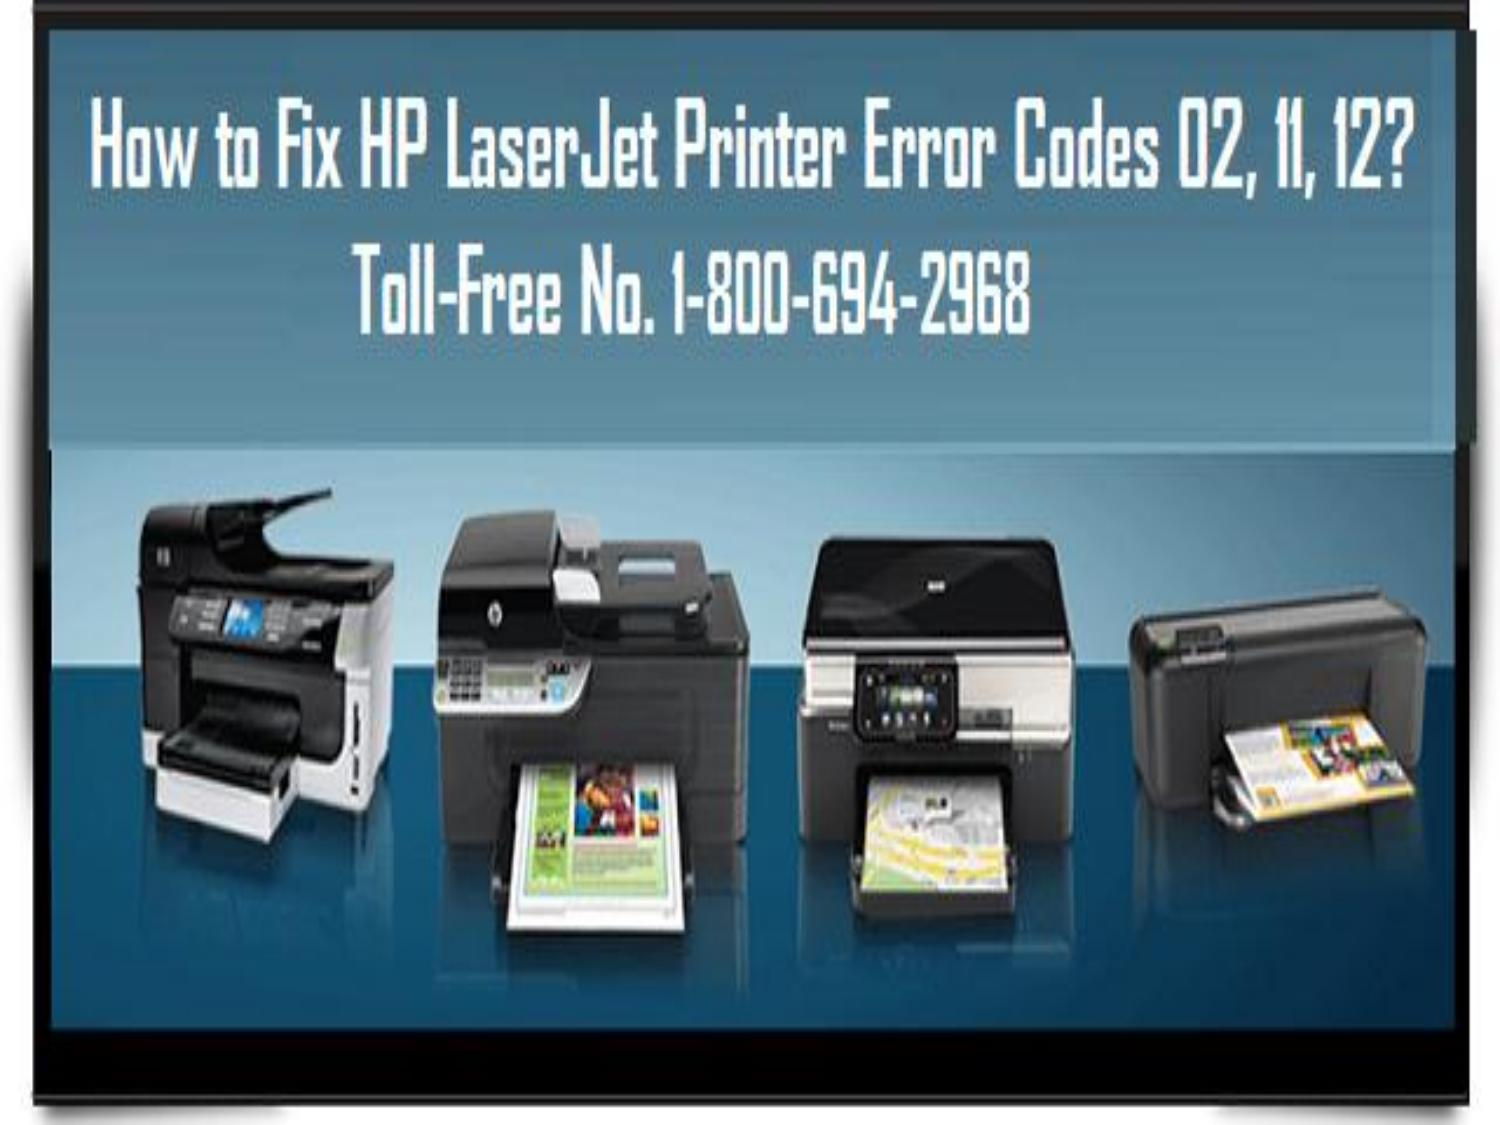 Call 1-800-694-2968 To Fix HP LaserJet Printer Error Codes